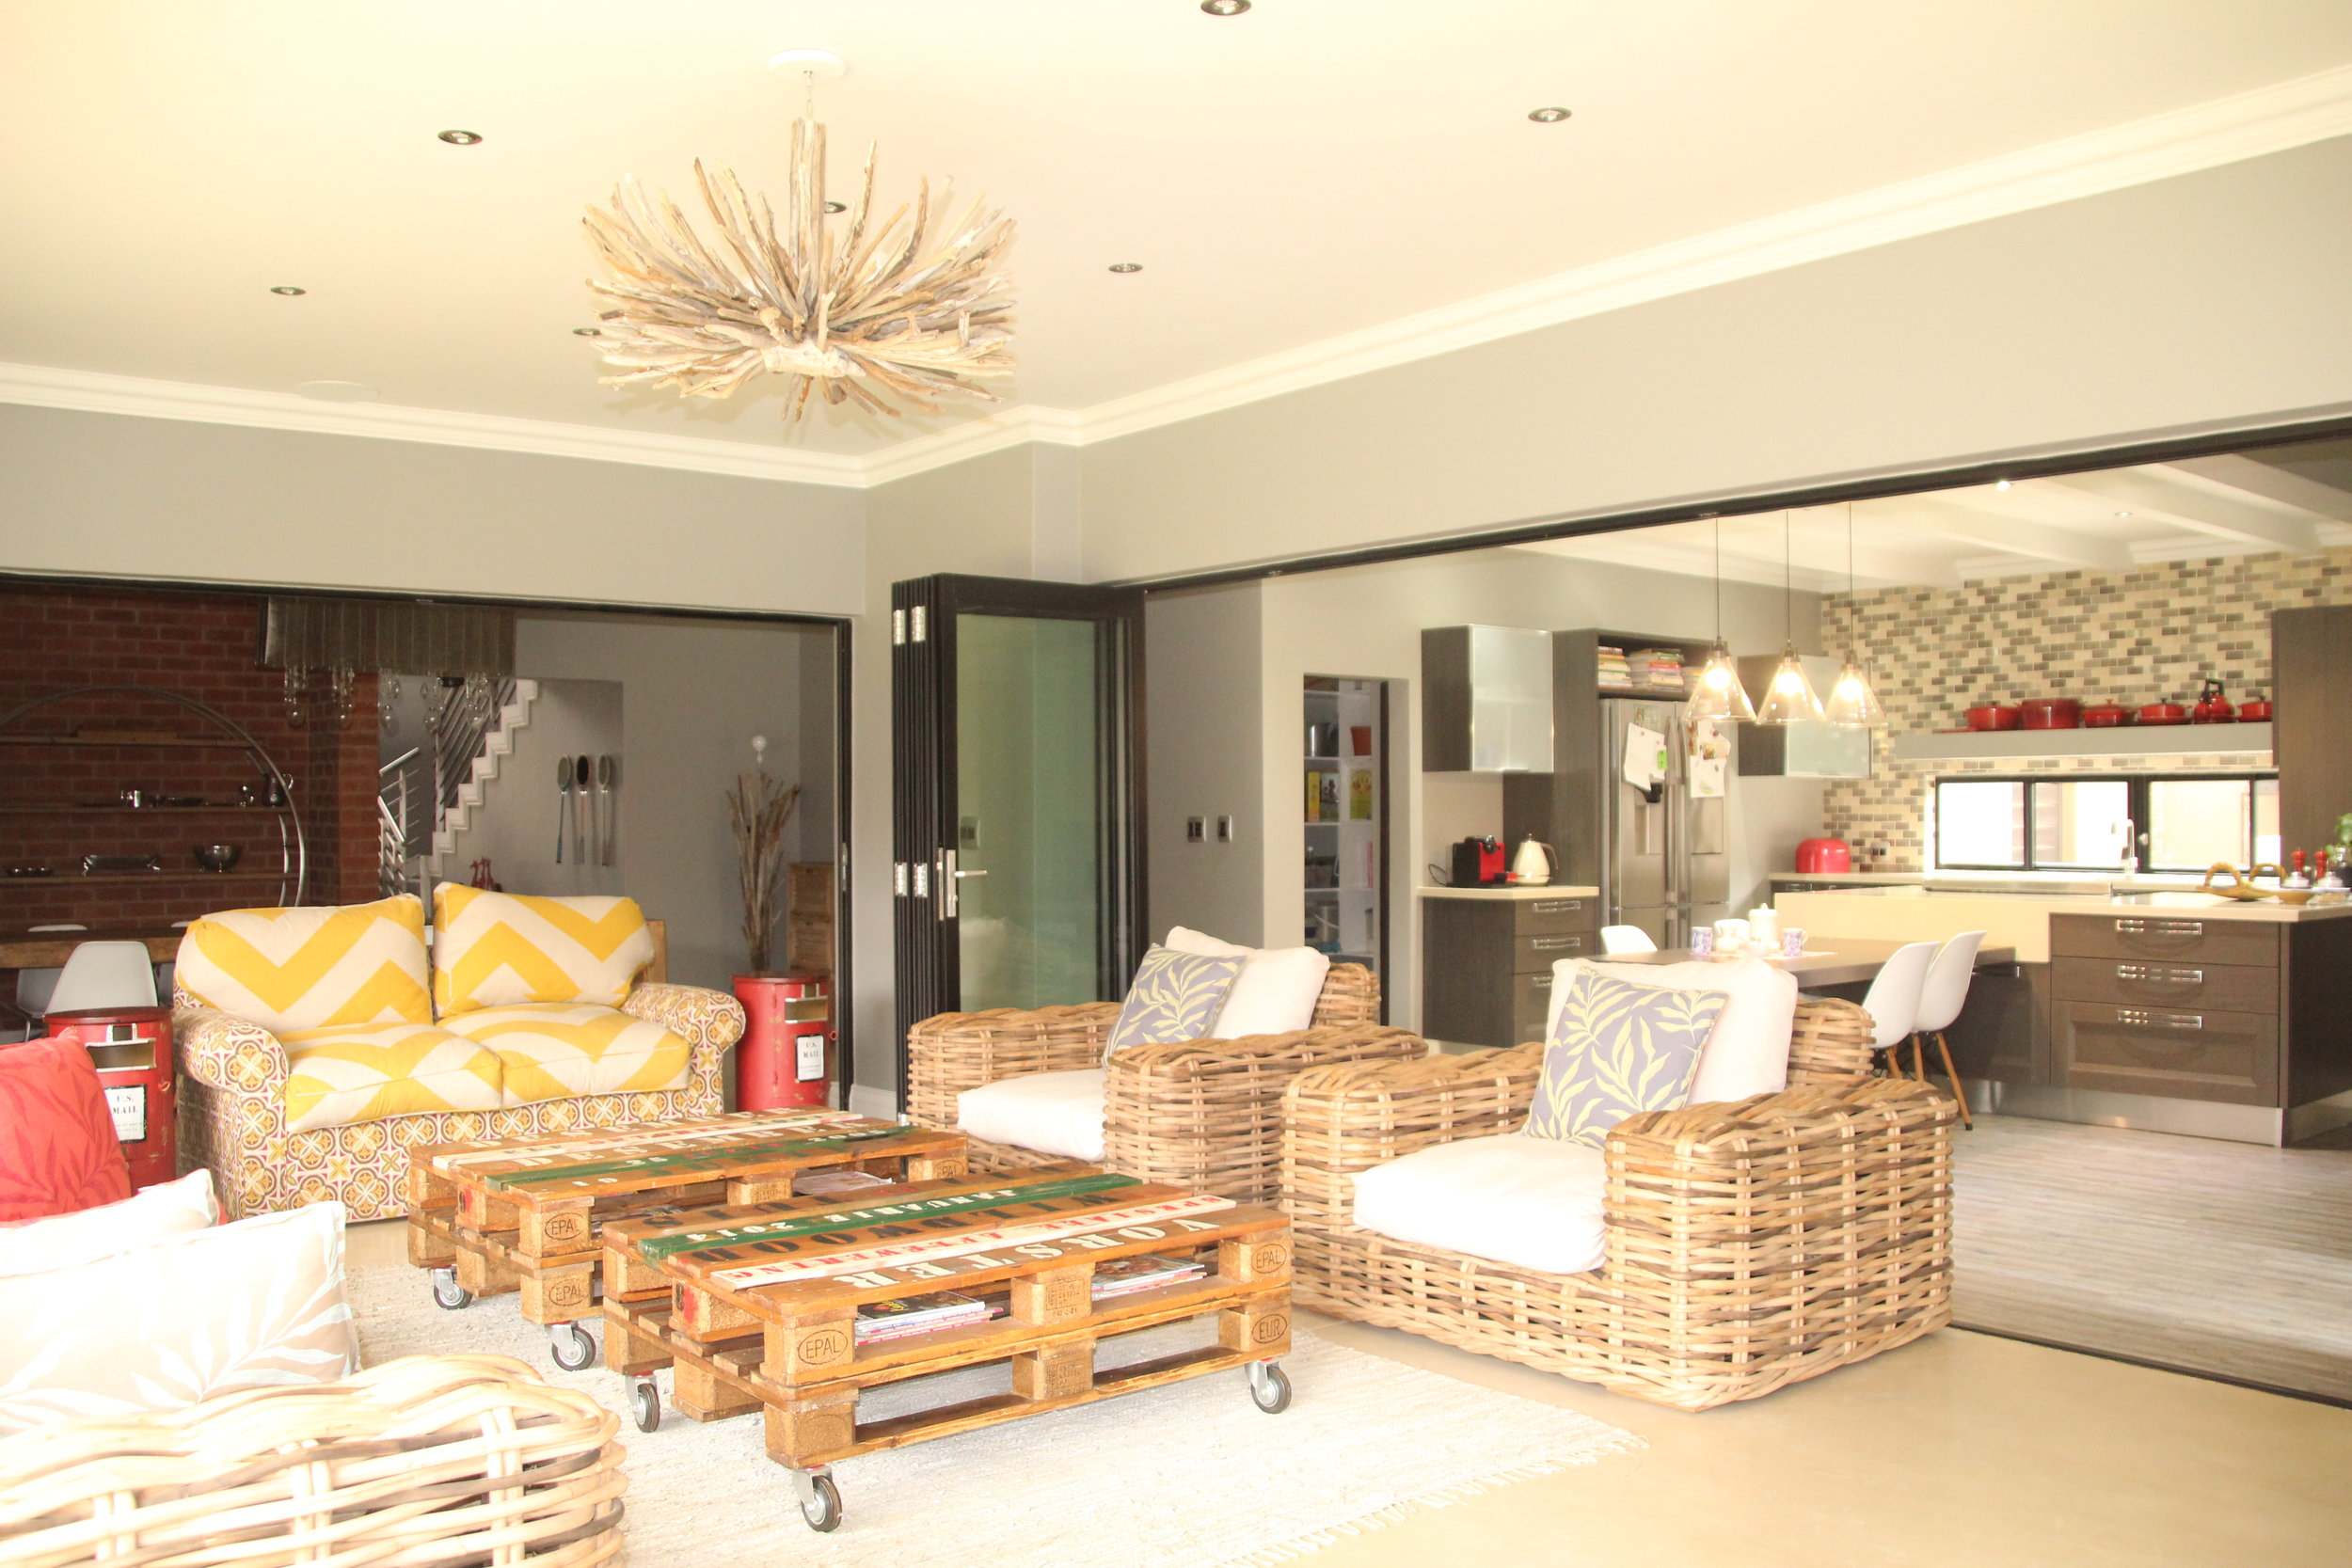 1 Indoo-Outdoor Sitting Room and Kitchen.JPG